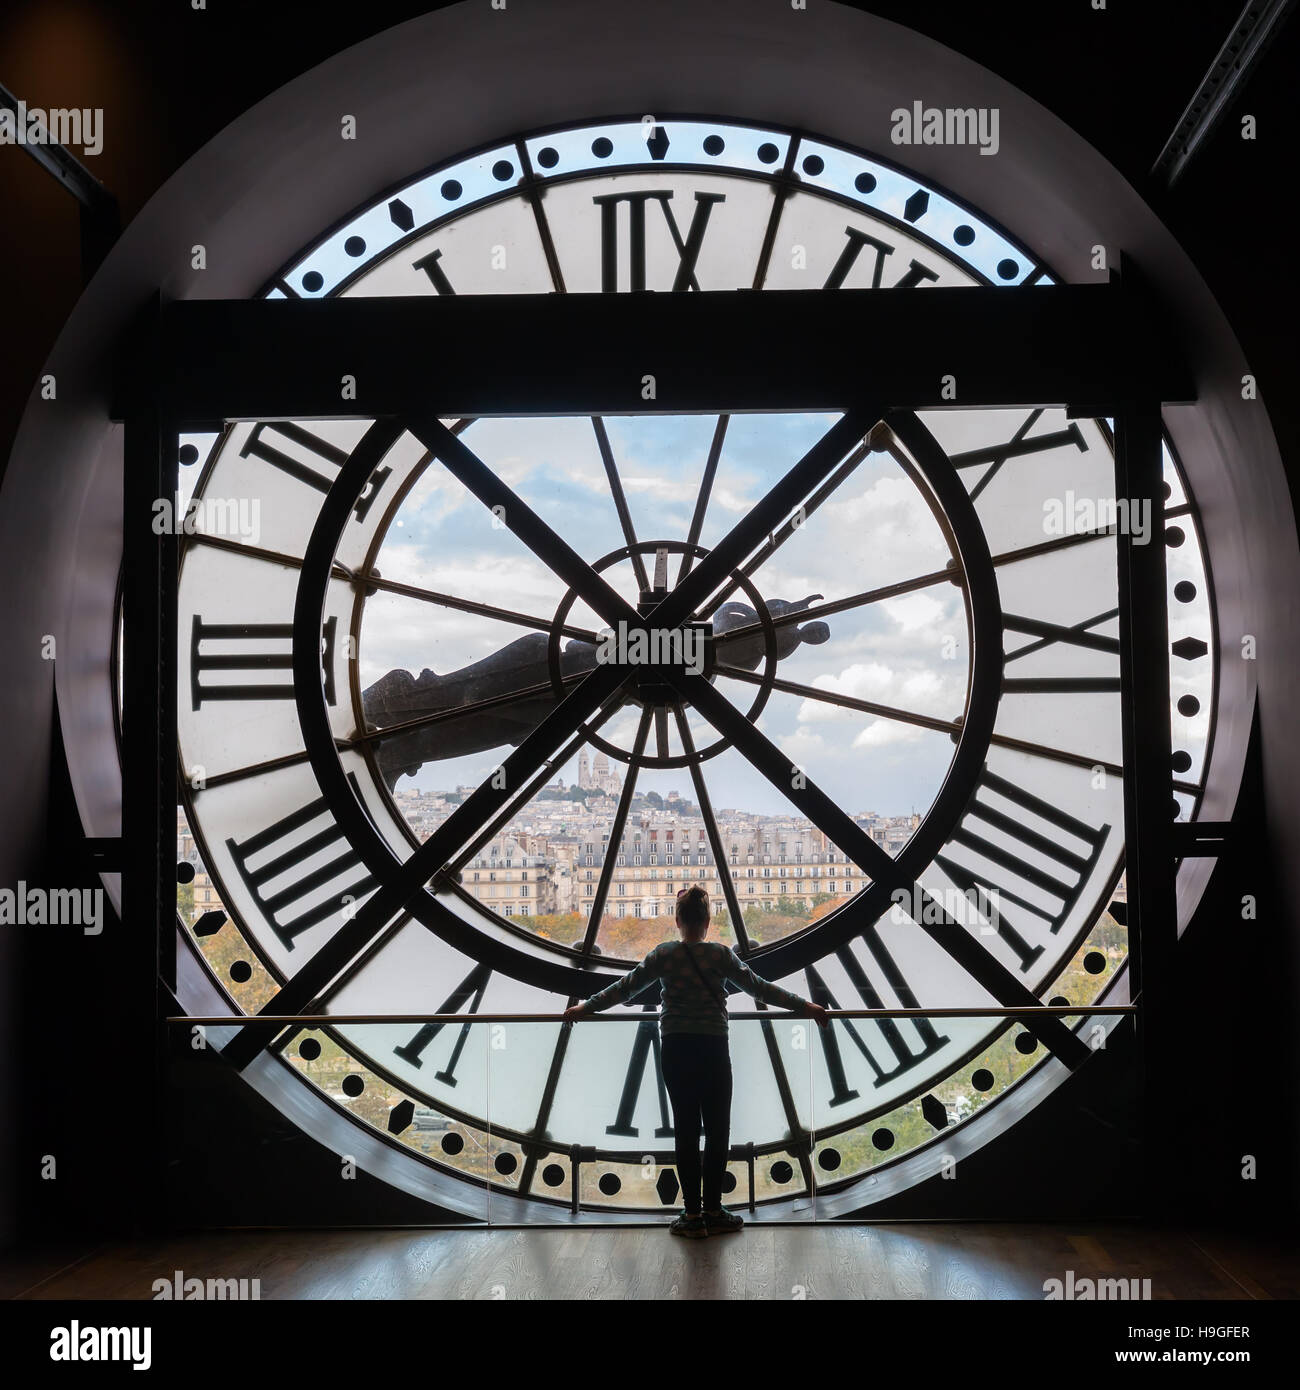 giant clock of Musee d'Orsay in Paris, France - Stock Image